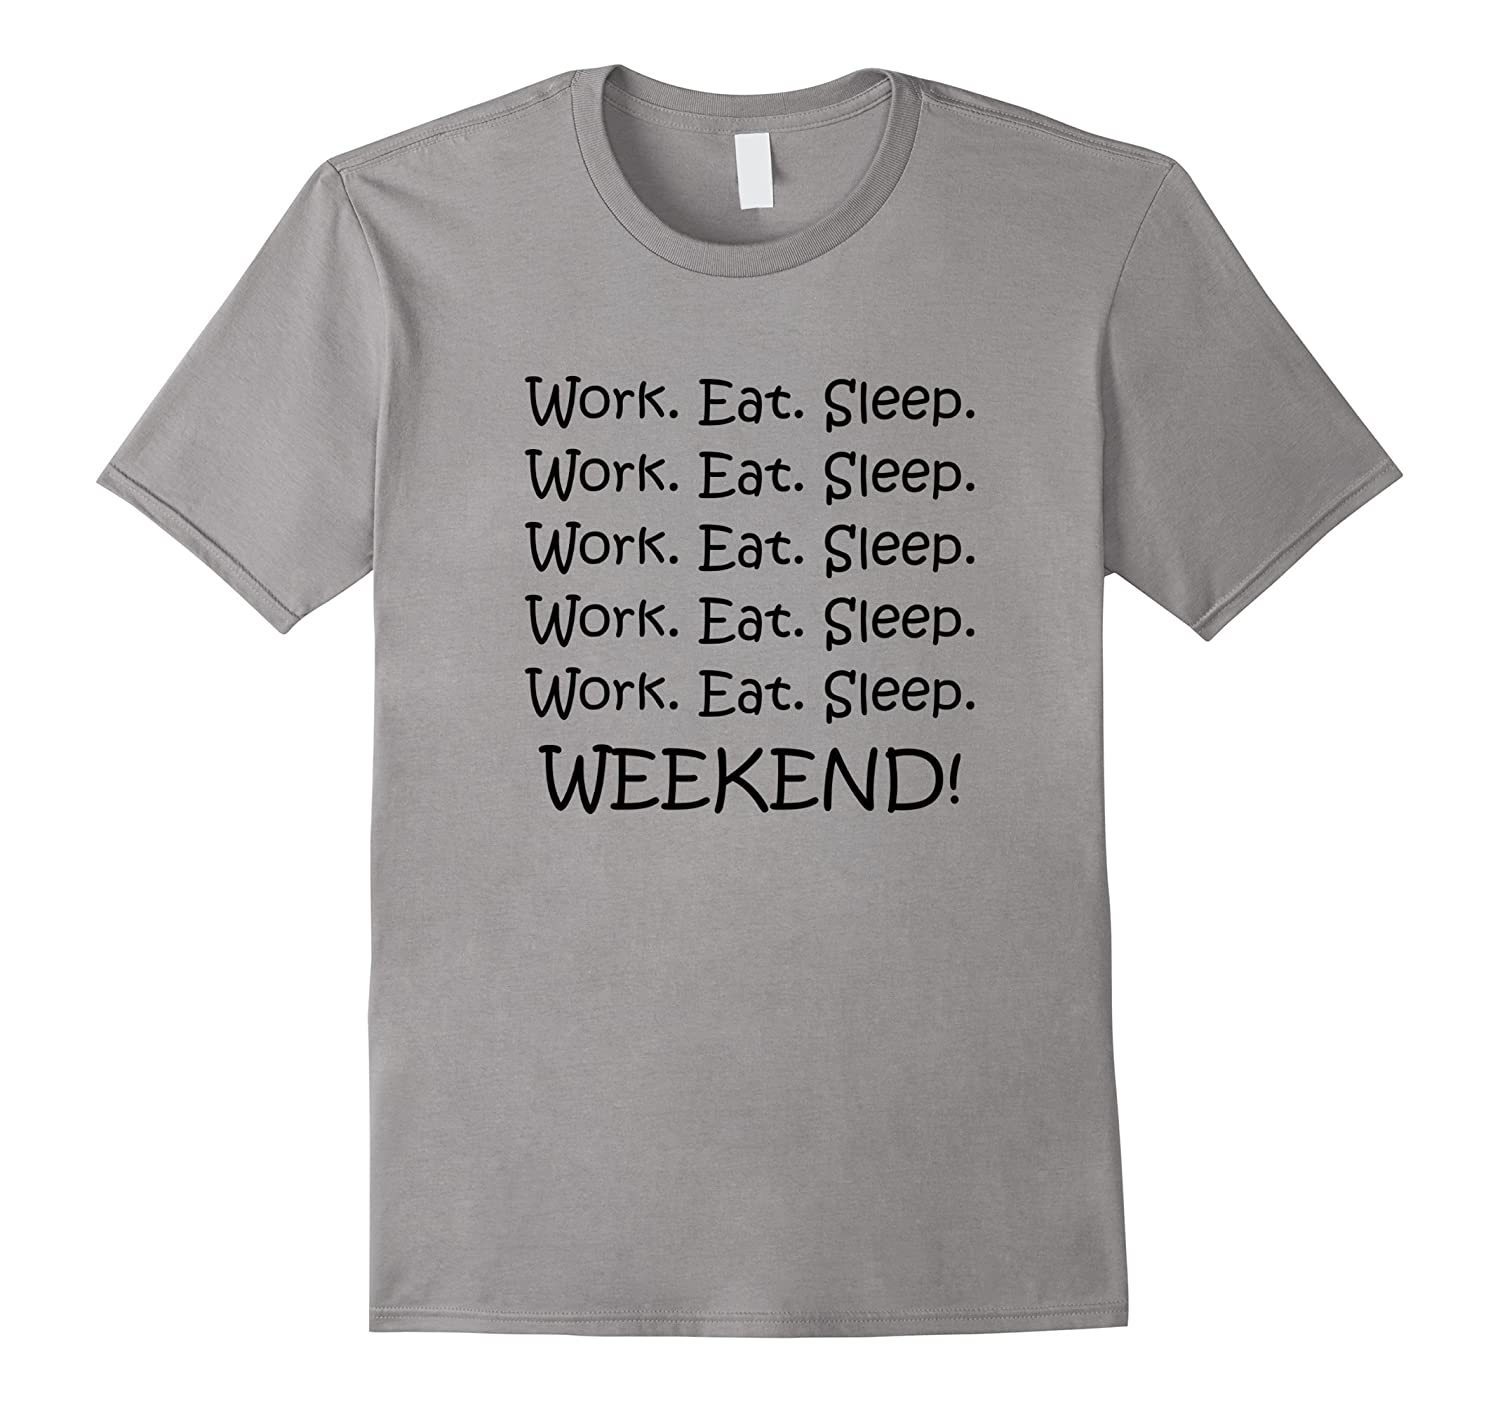 For People At Work - Mens, Womens, Girls, Boys TShirts-CL